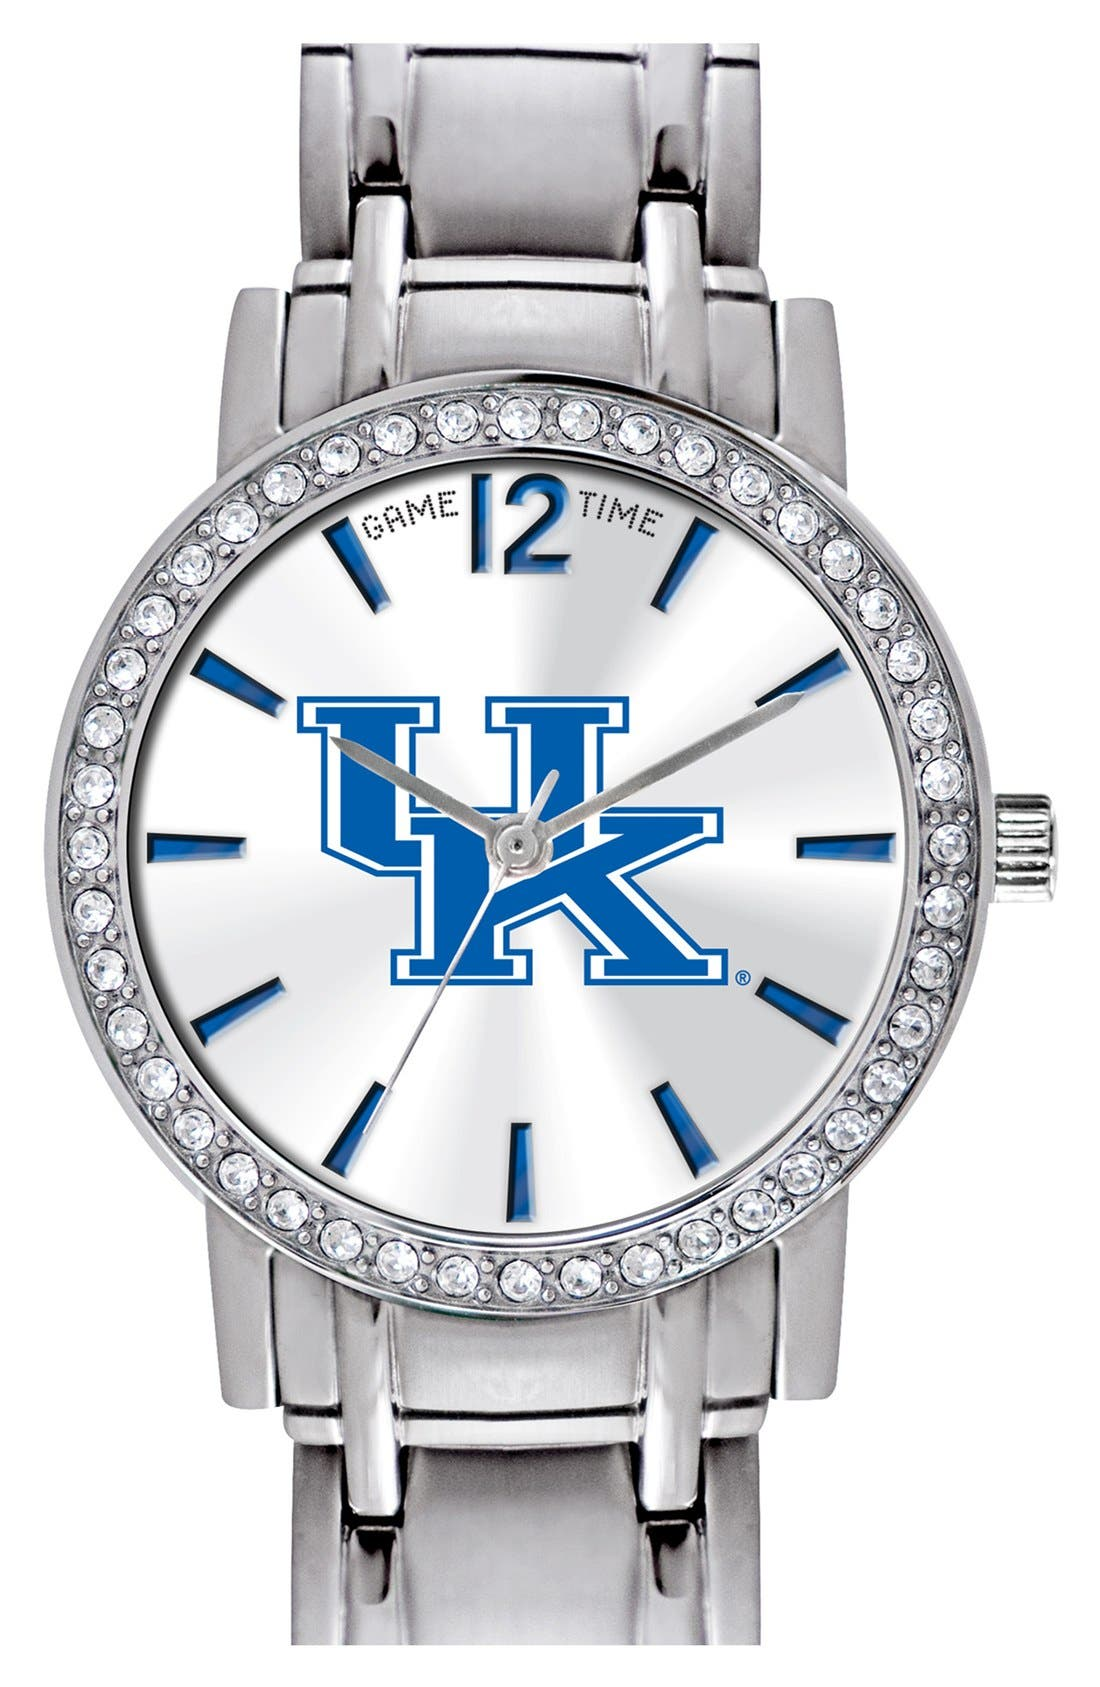 Main Image - Game Time Watches 'College All Star - University of Kentucky' Crystal Bezel Bracelet Watch, 32mm